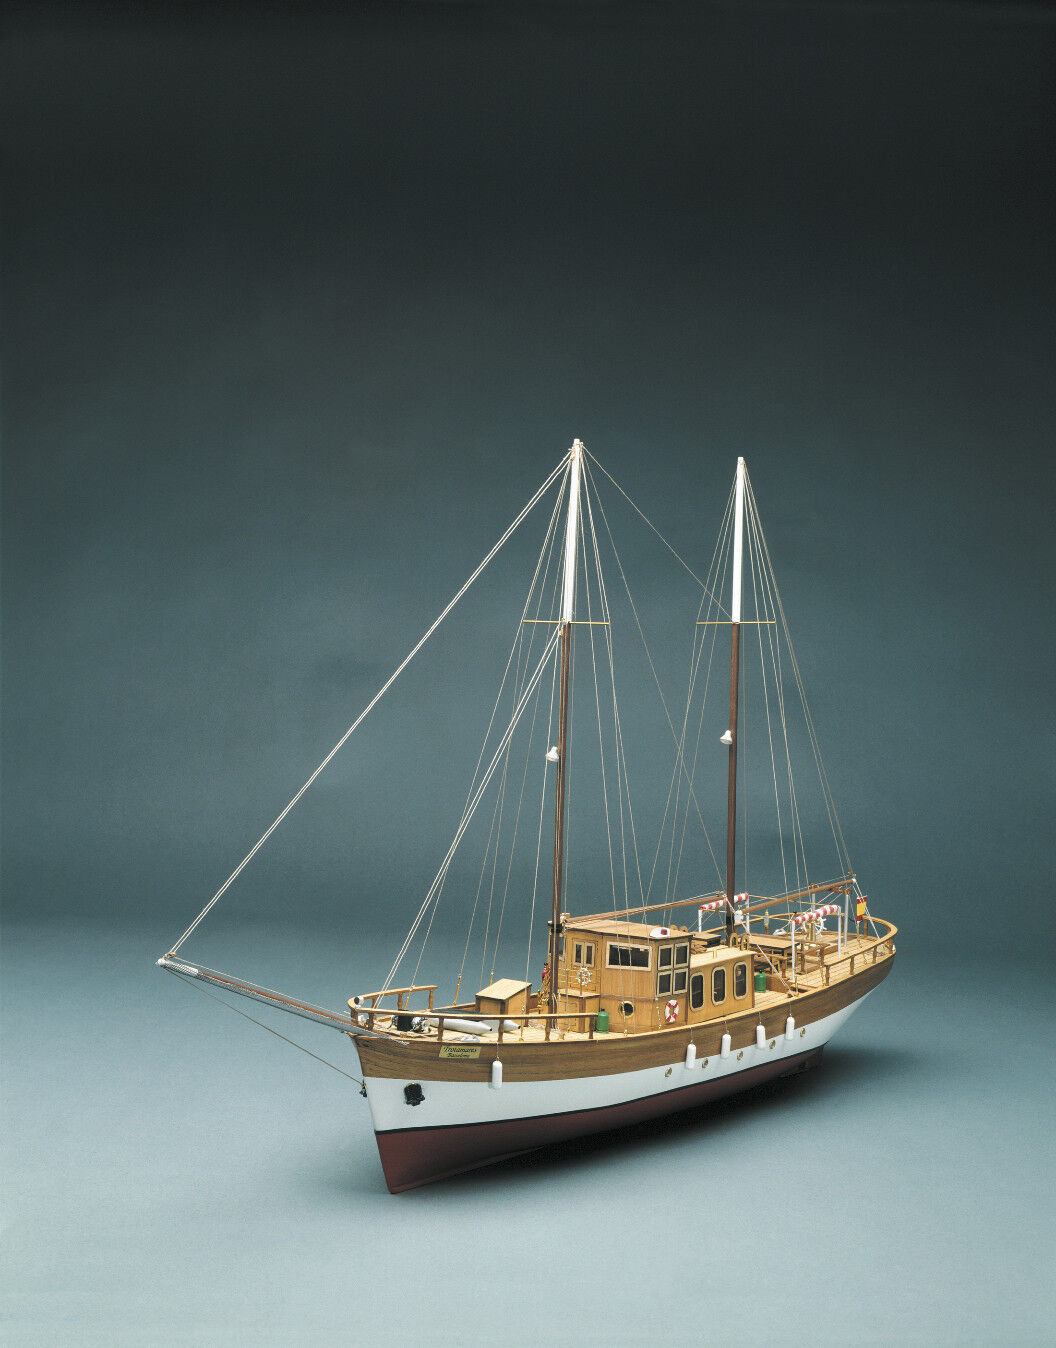 Mantua Models Tredamares Sailing Motor Yacht 1 43 Static Model Kit